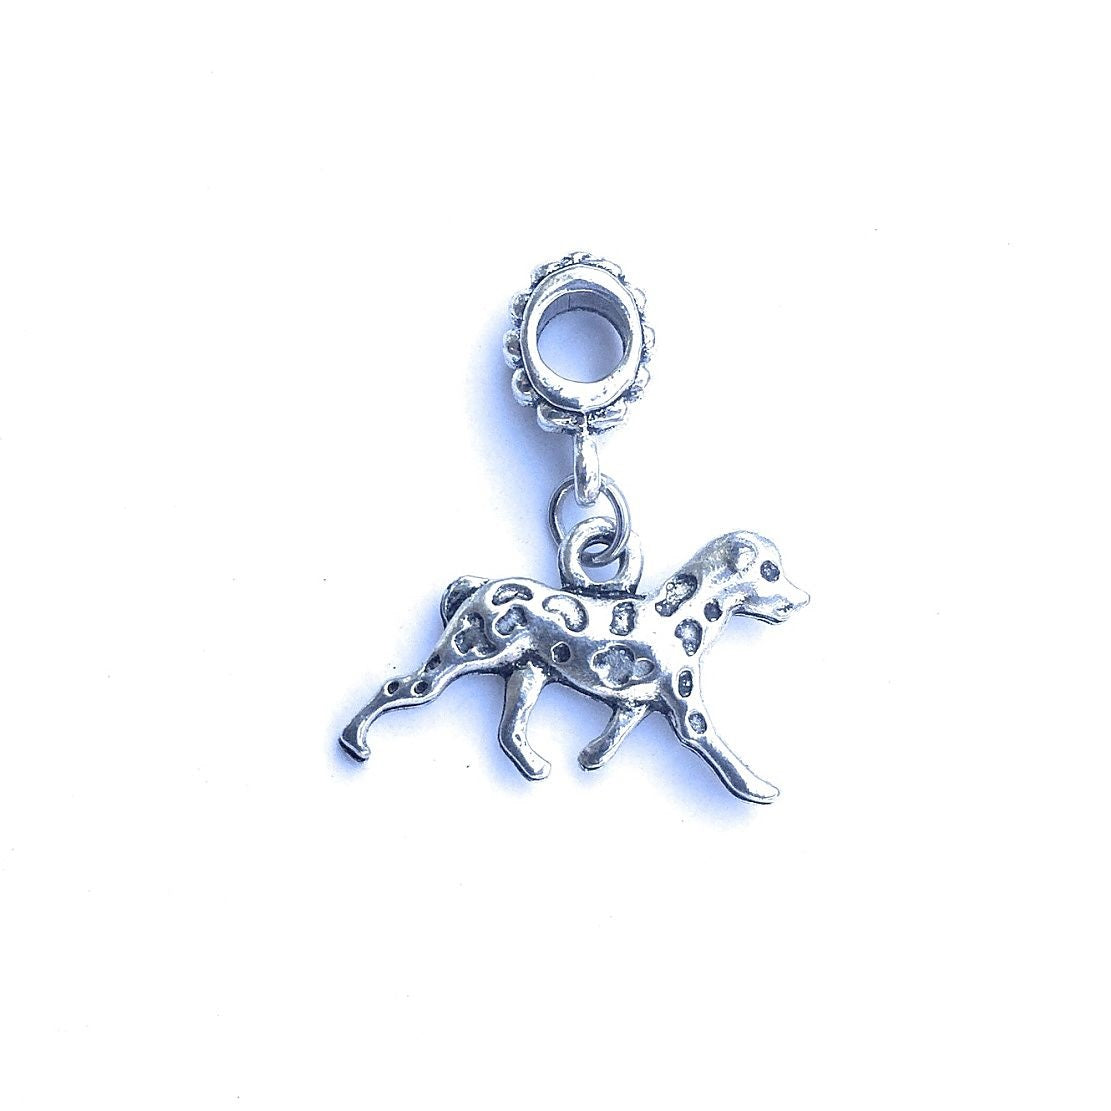 Handcrafted Silver Dalmatian Dog Charm Bead for Bracelet.